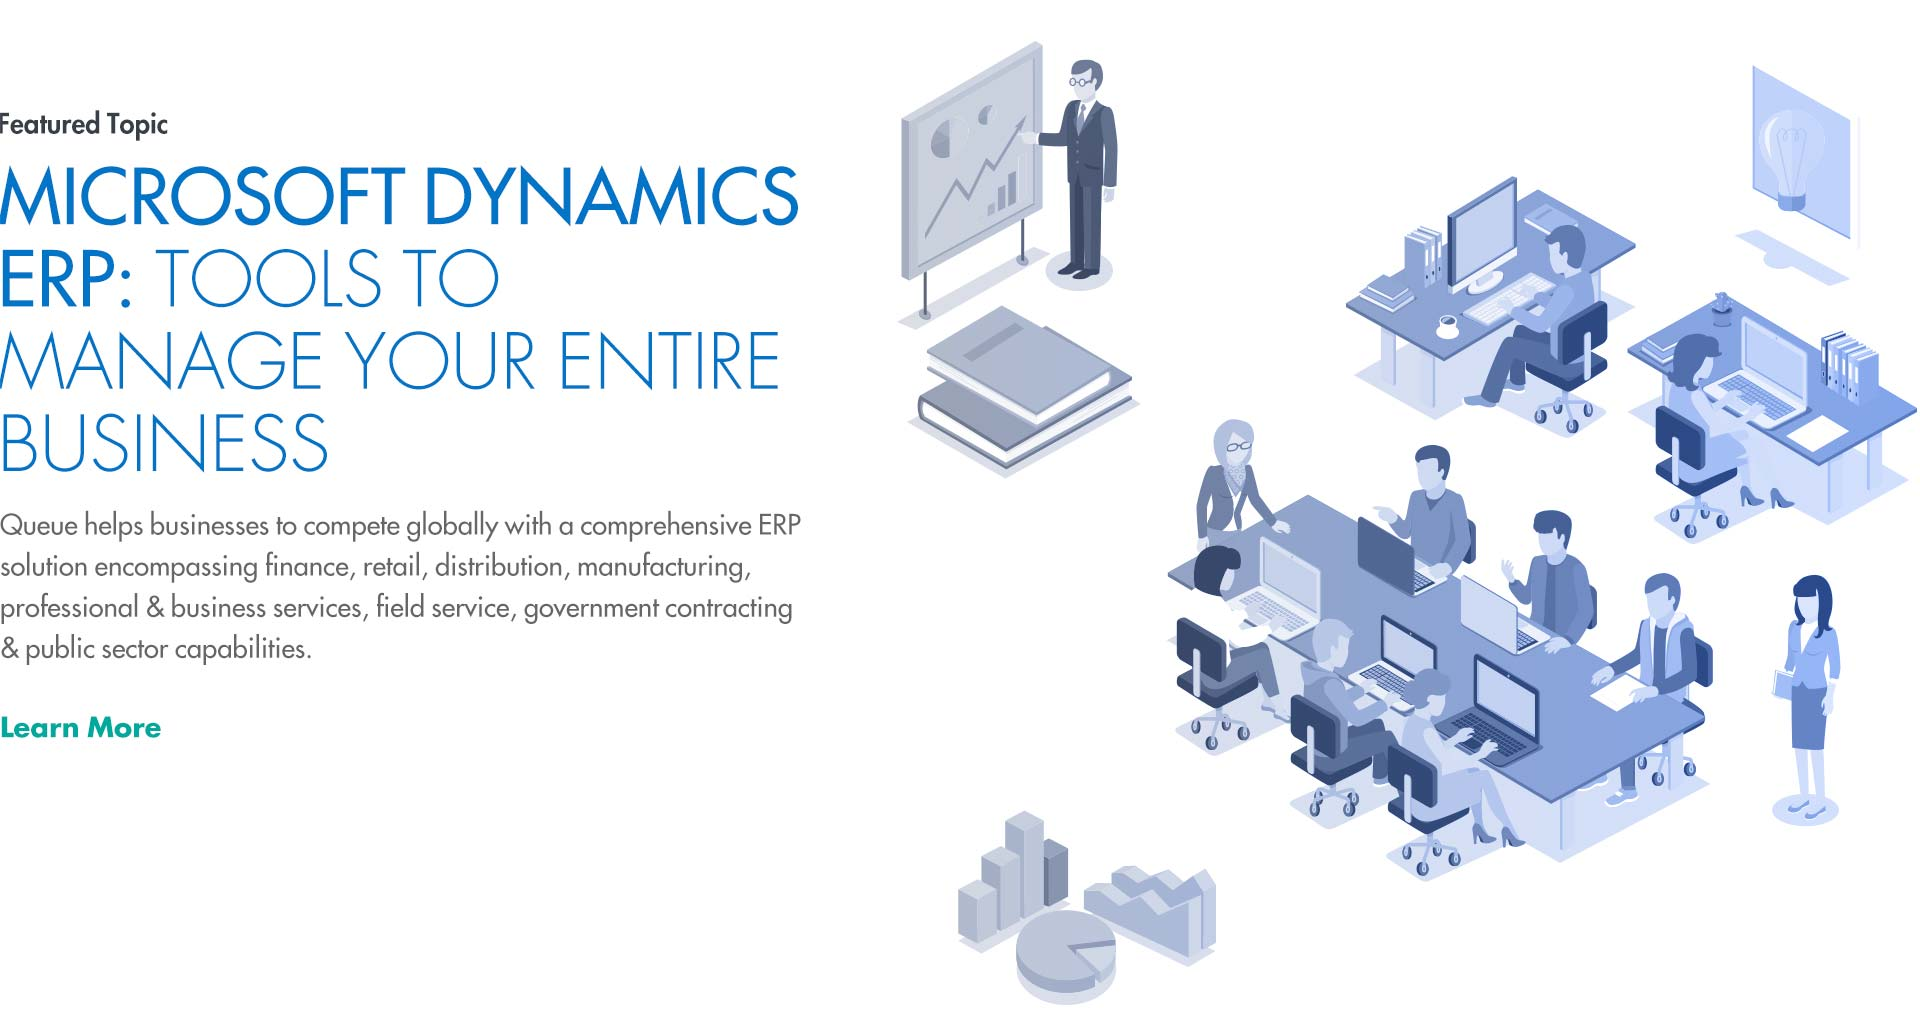 Microsoft dynamics gold partner microsoft gold partner erp dynamics quicklinks select menu microsoft dynamics 1betcityfo Gallery